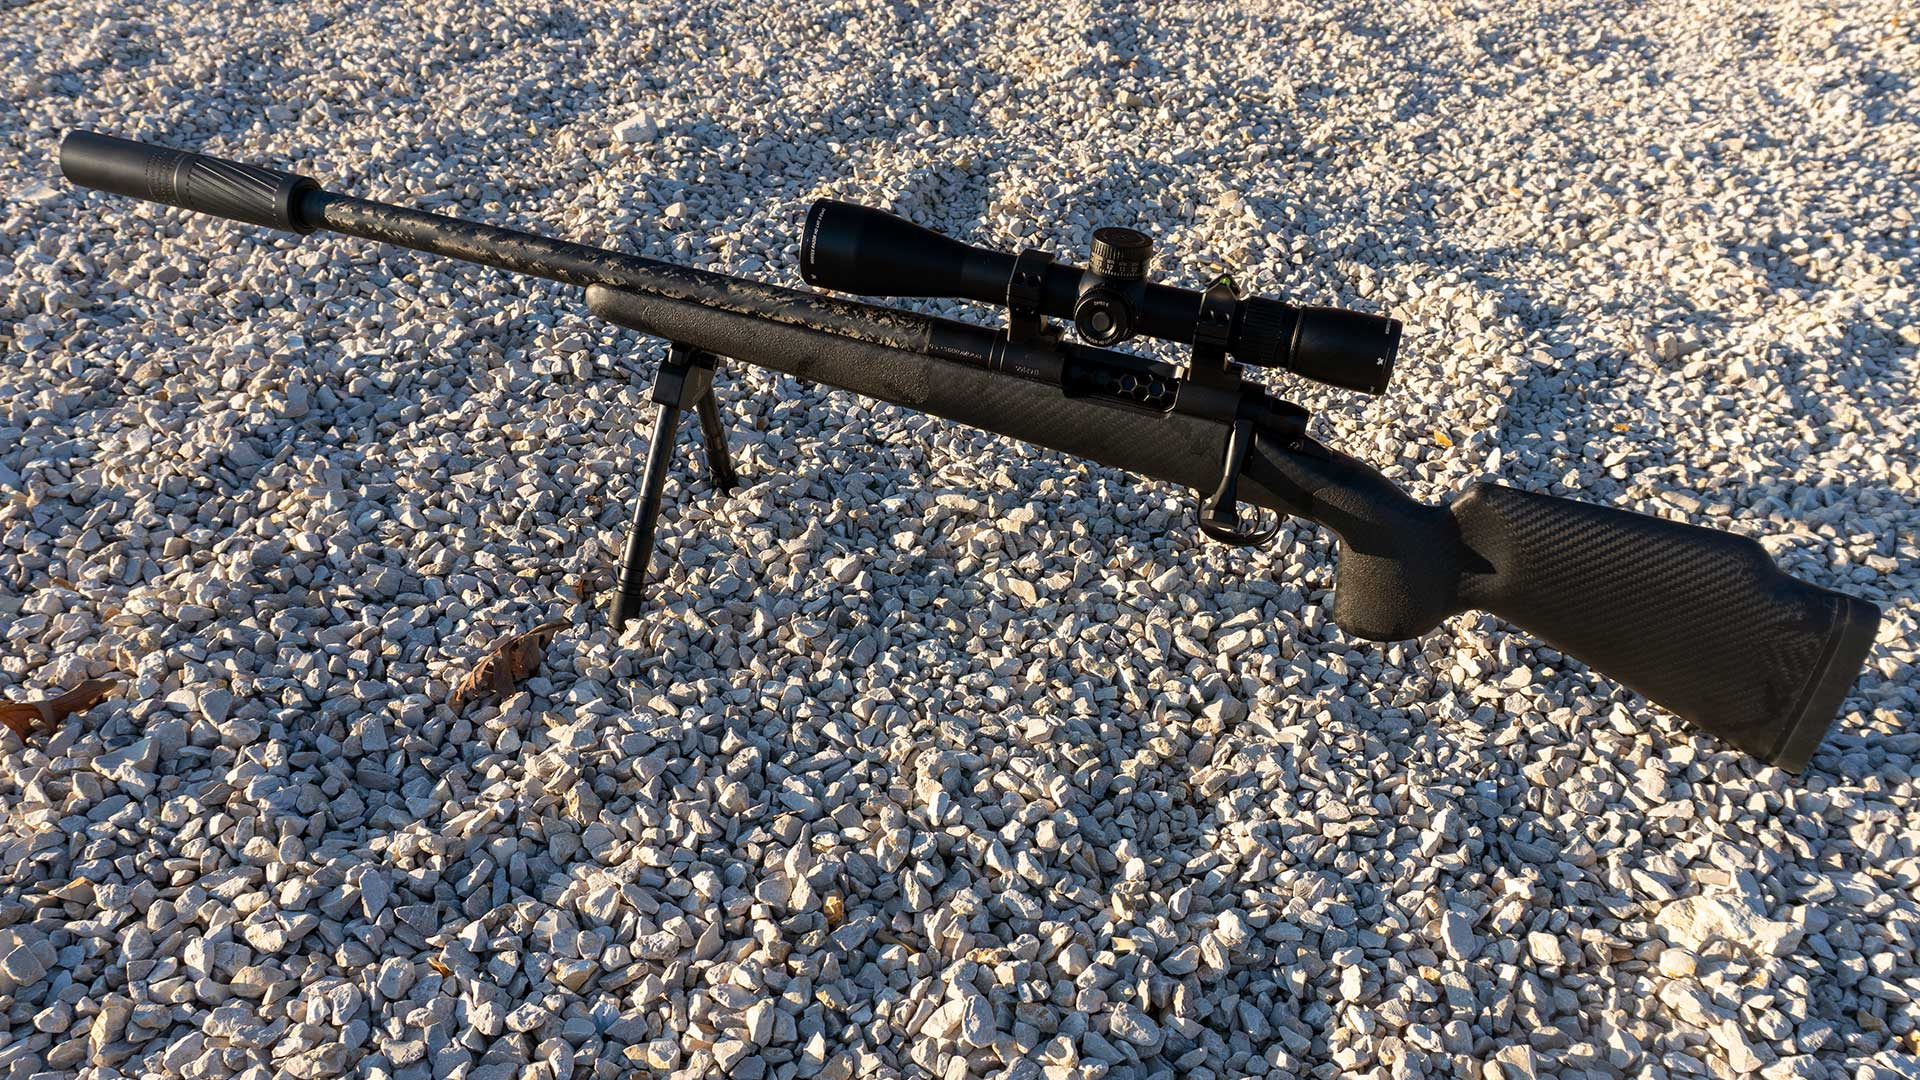 Mark's 6.5 Creedmoor Rifle from Mesa Precision Arms